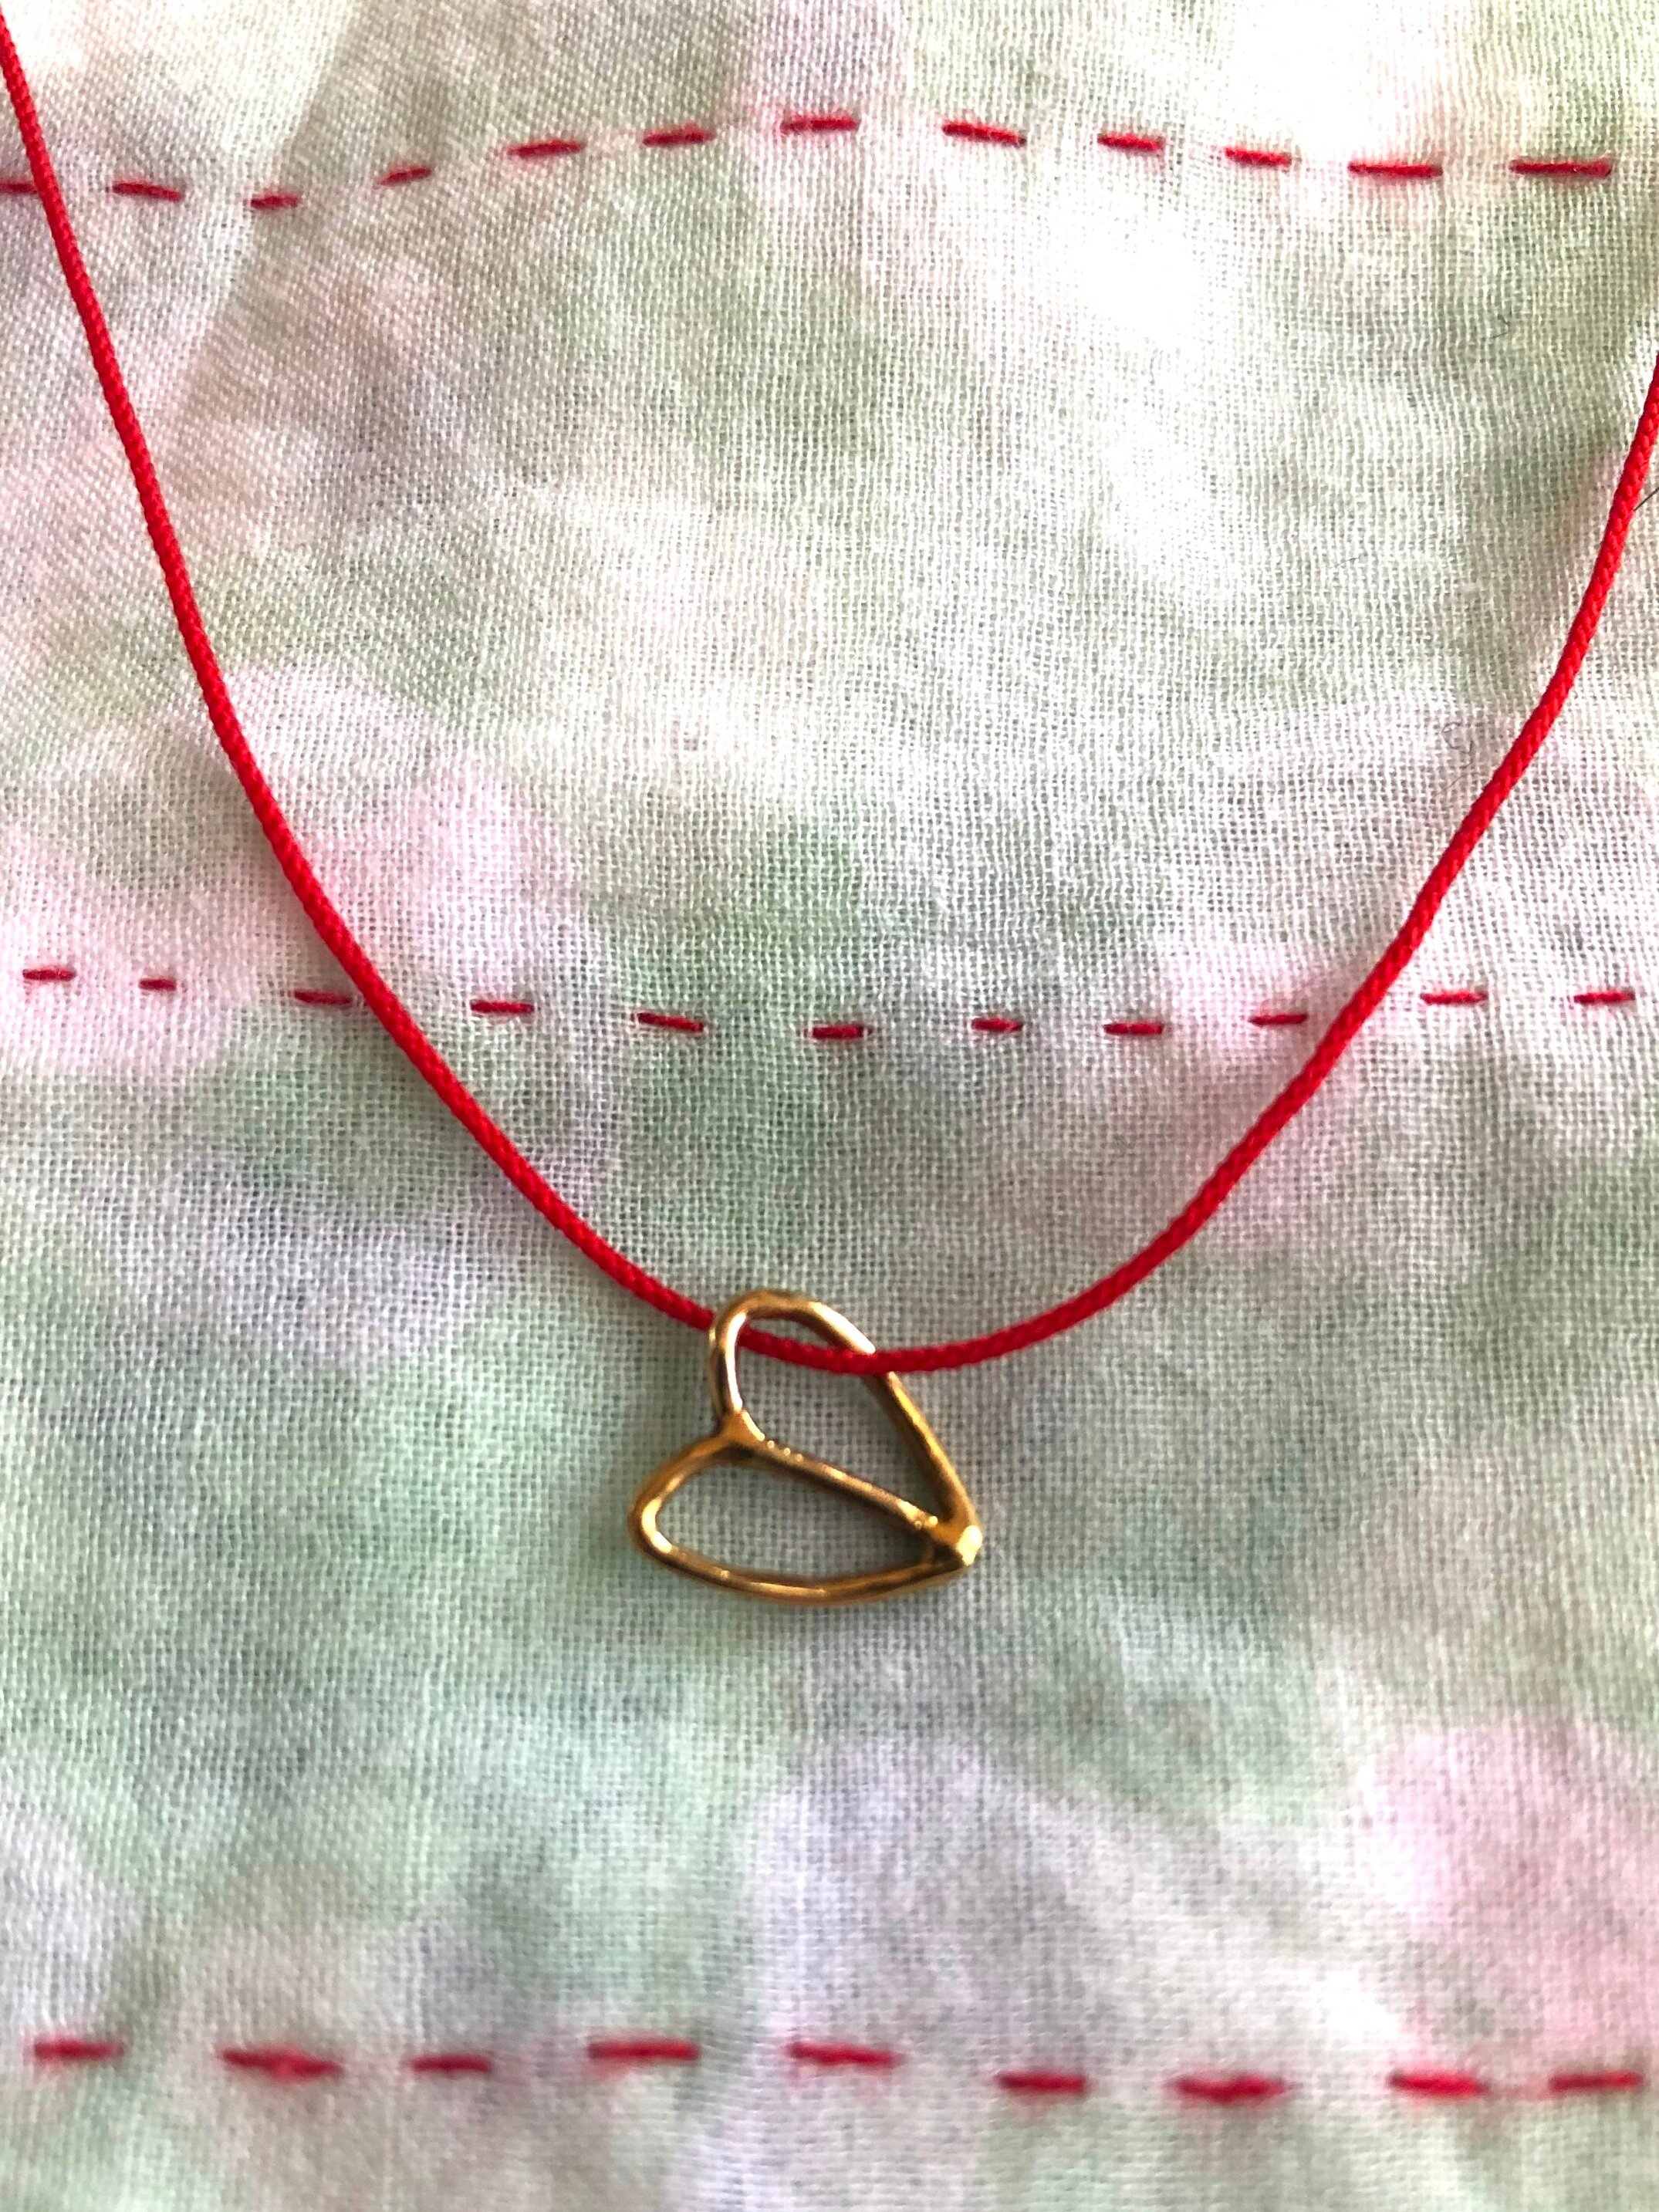 In Greek mythology The Moirai are overseers of our mortal threads, The Line of Fate. There's Clotho: The Spinner, Lachesis: The Drawer, Atropos: The Cutter. We are at their mercy, each heart beat dangling delicately on a blood red string. It's bouncy and resilient, but thin and snipped in a moment. Cherish, relish. Bittersweet is being, blood is bittersweet. -